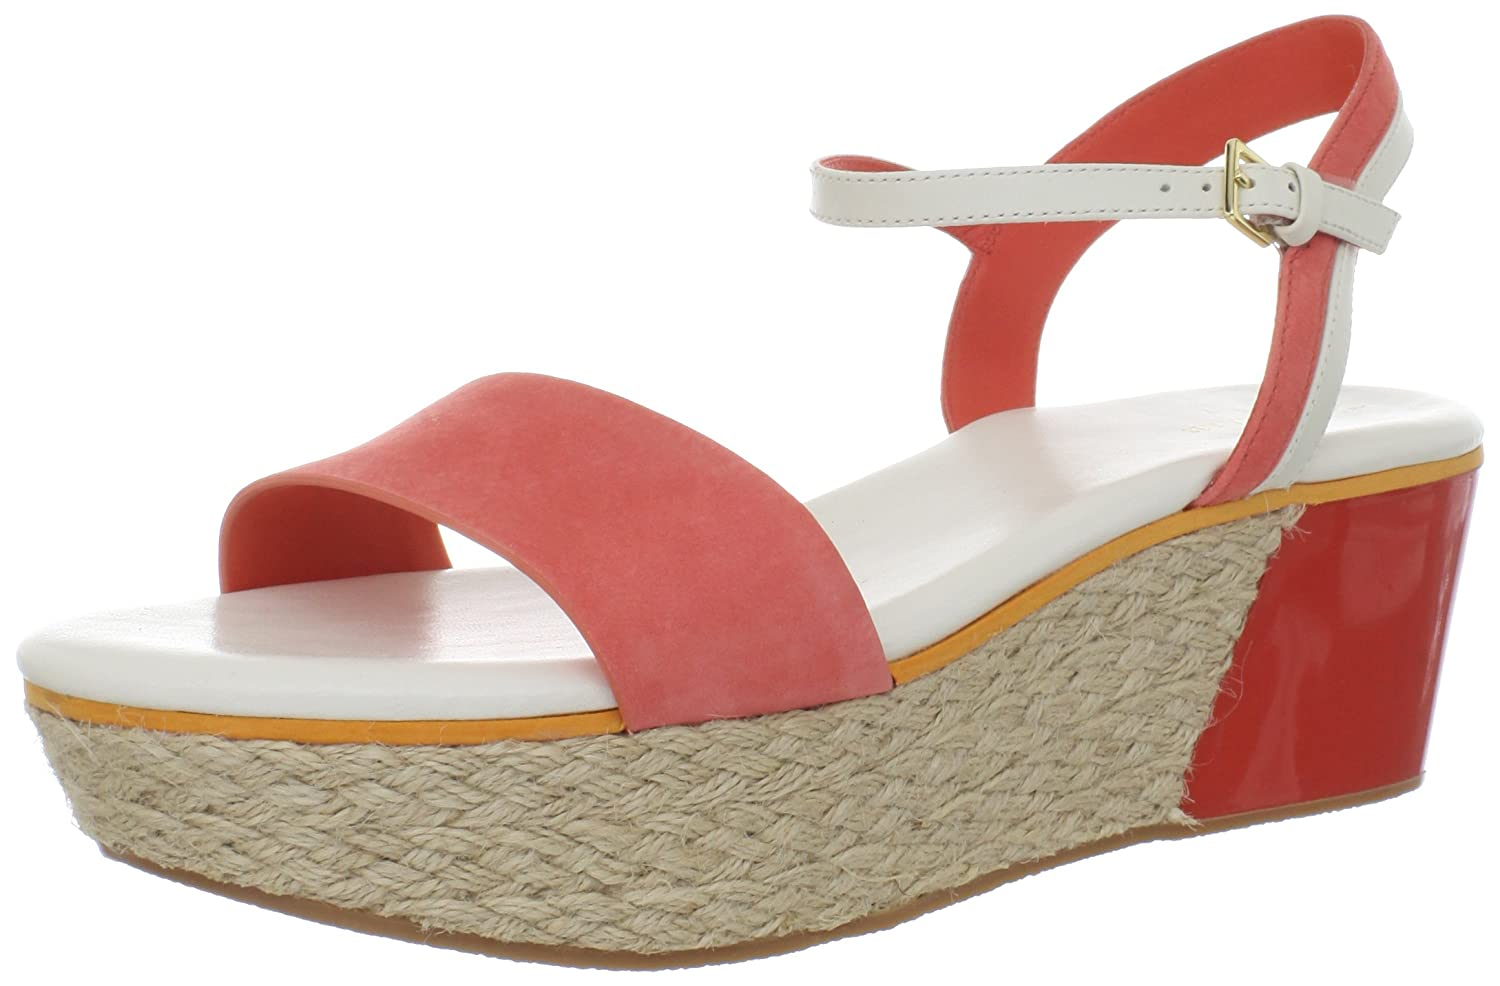 Cole Haan Women's Arden Platform Wedge Sandal B0090OBS8A 7.5 B(M) US|Orange Pop